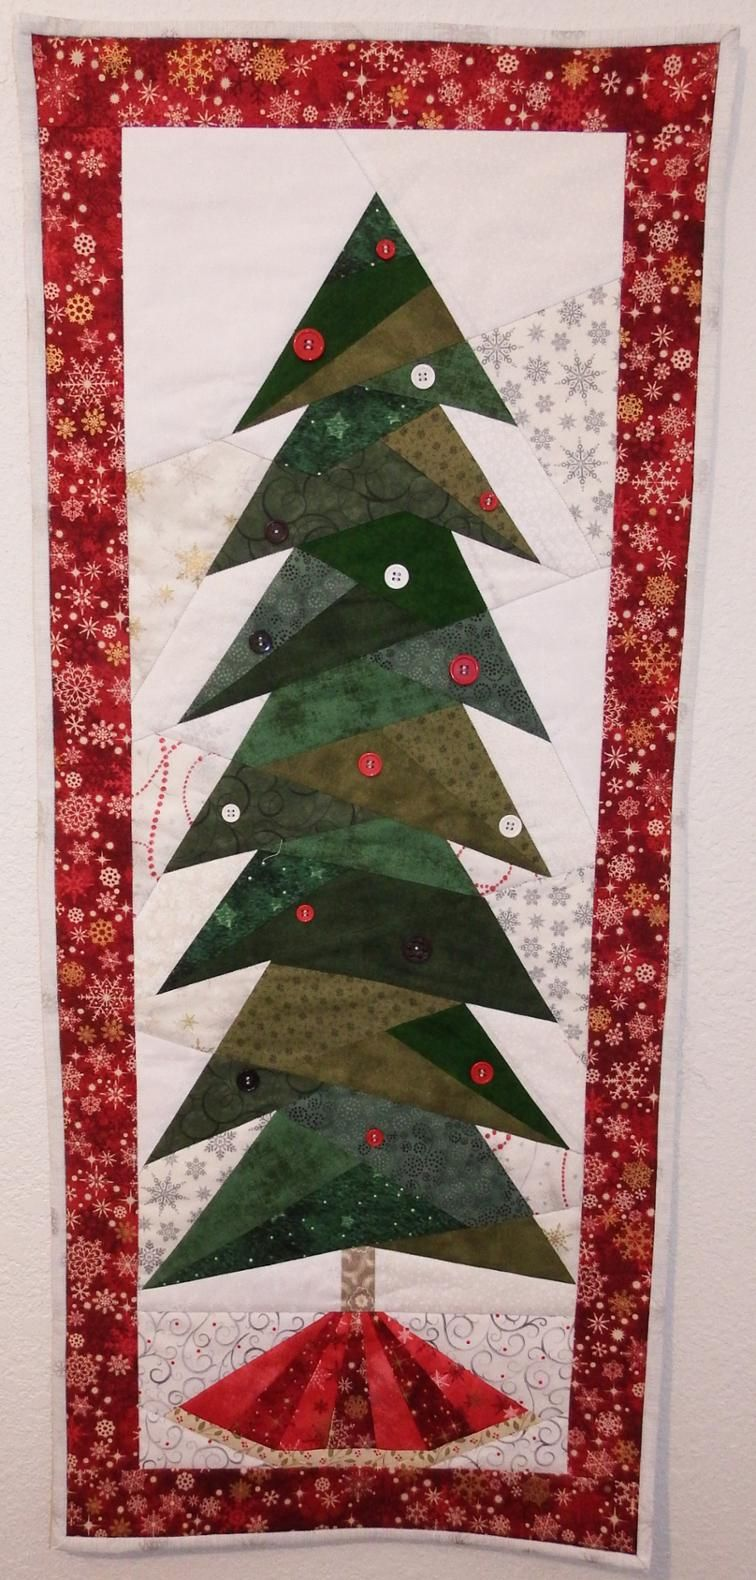 Christmas Tree Wall Hanging Foundation Paper Piecing Pattern By Christmas Tree Quilted Wall Hanging Foundation Paper Piecing Patterns Christmas Tree Quilt